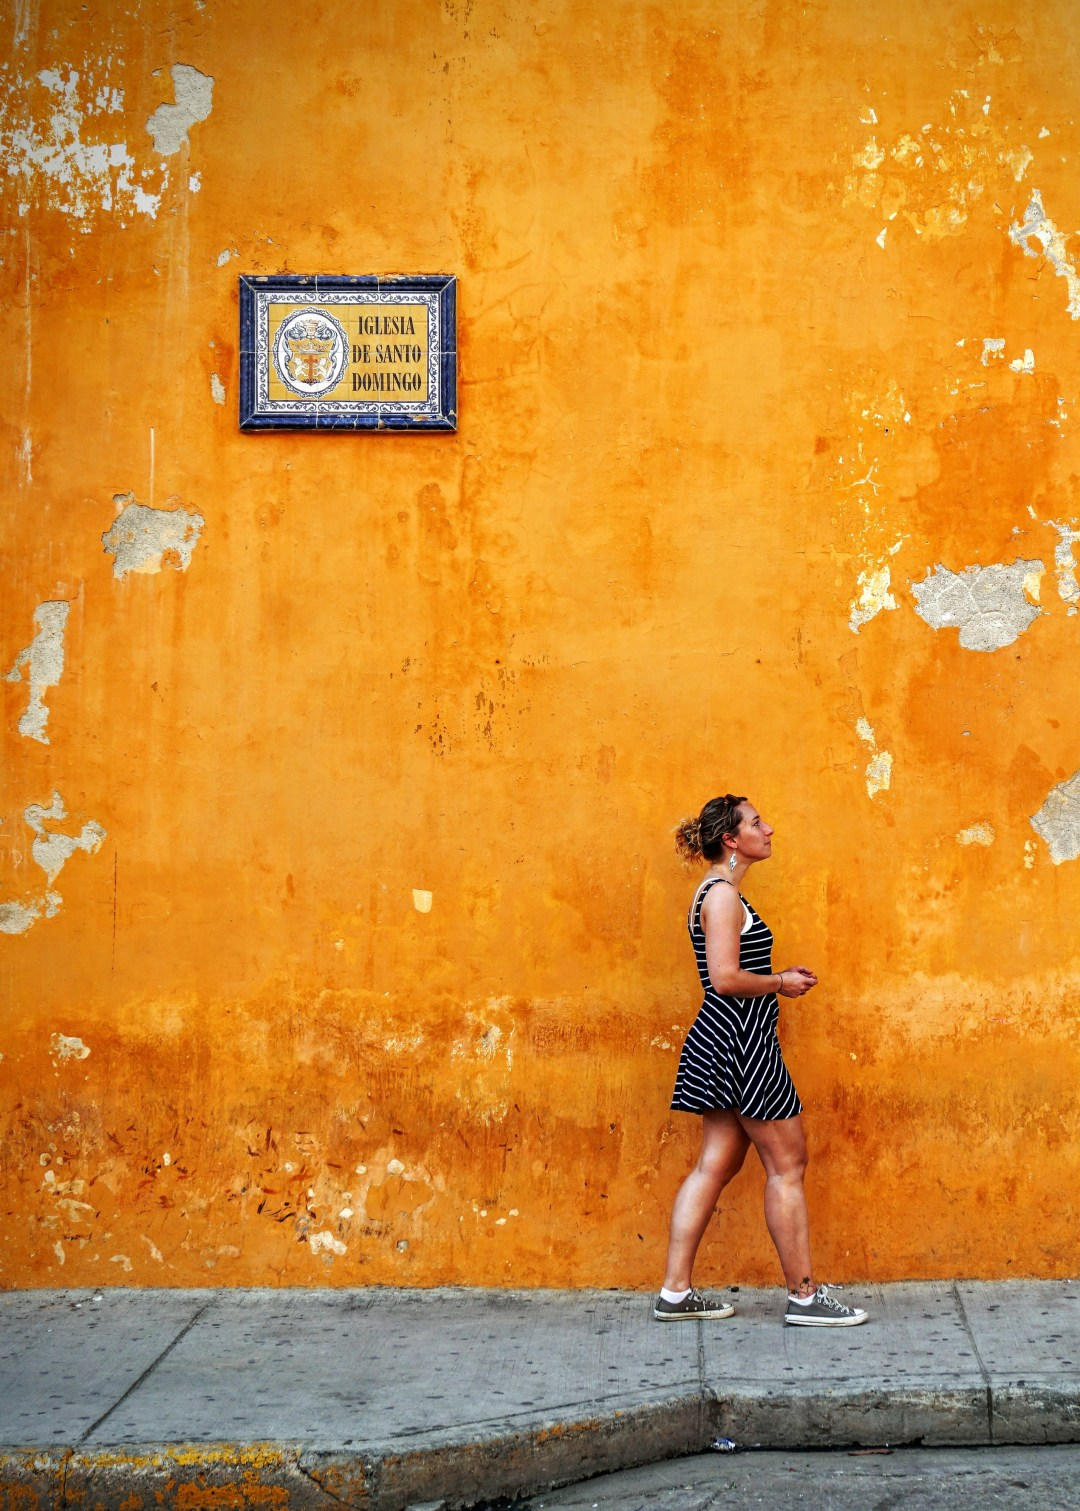 Girl Image Wallpaper Download Woman Orange Sign And Sidewalk Hd Photo By Maarten Van